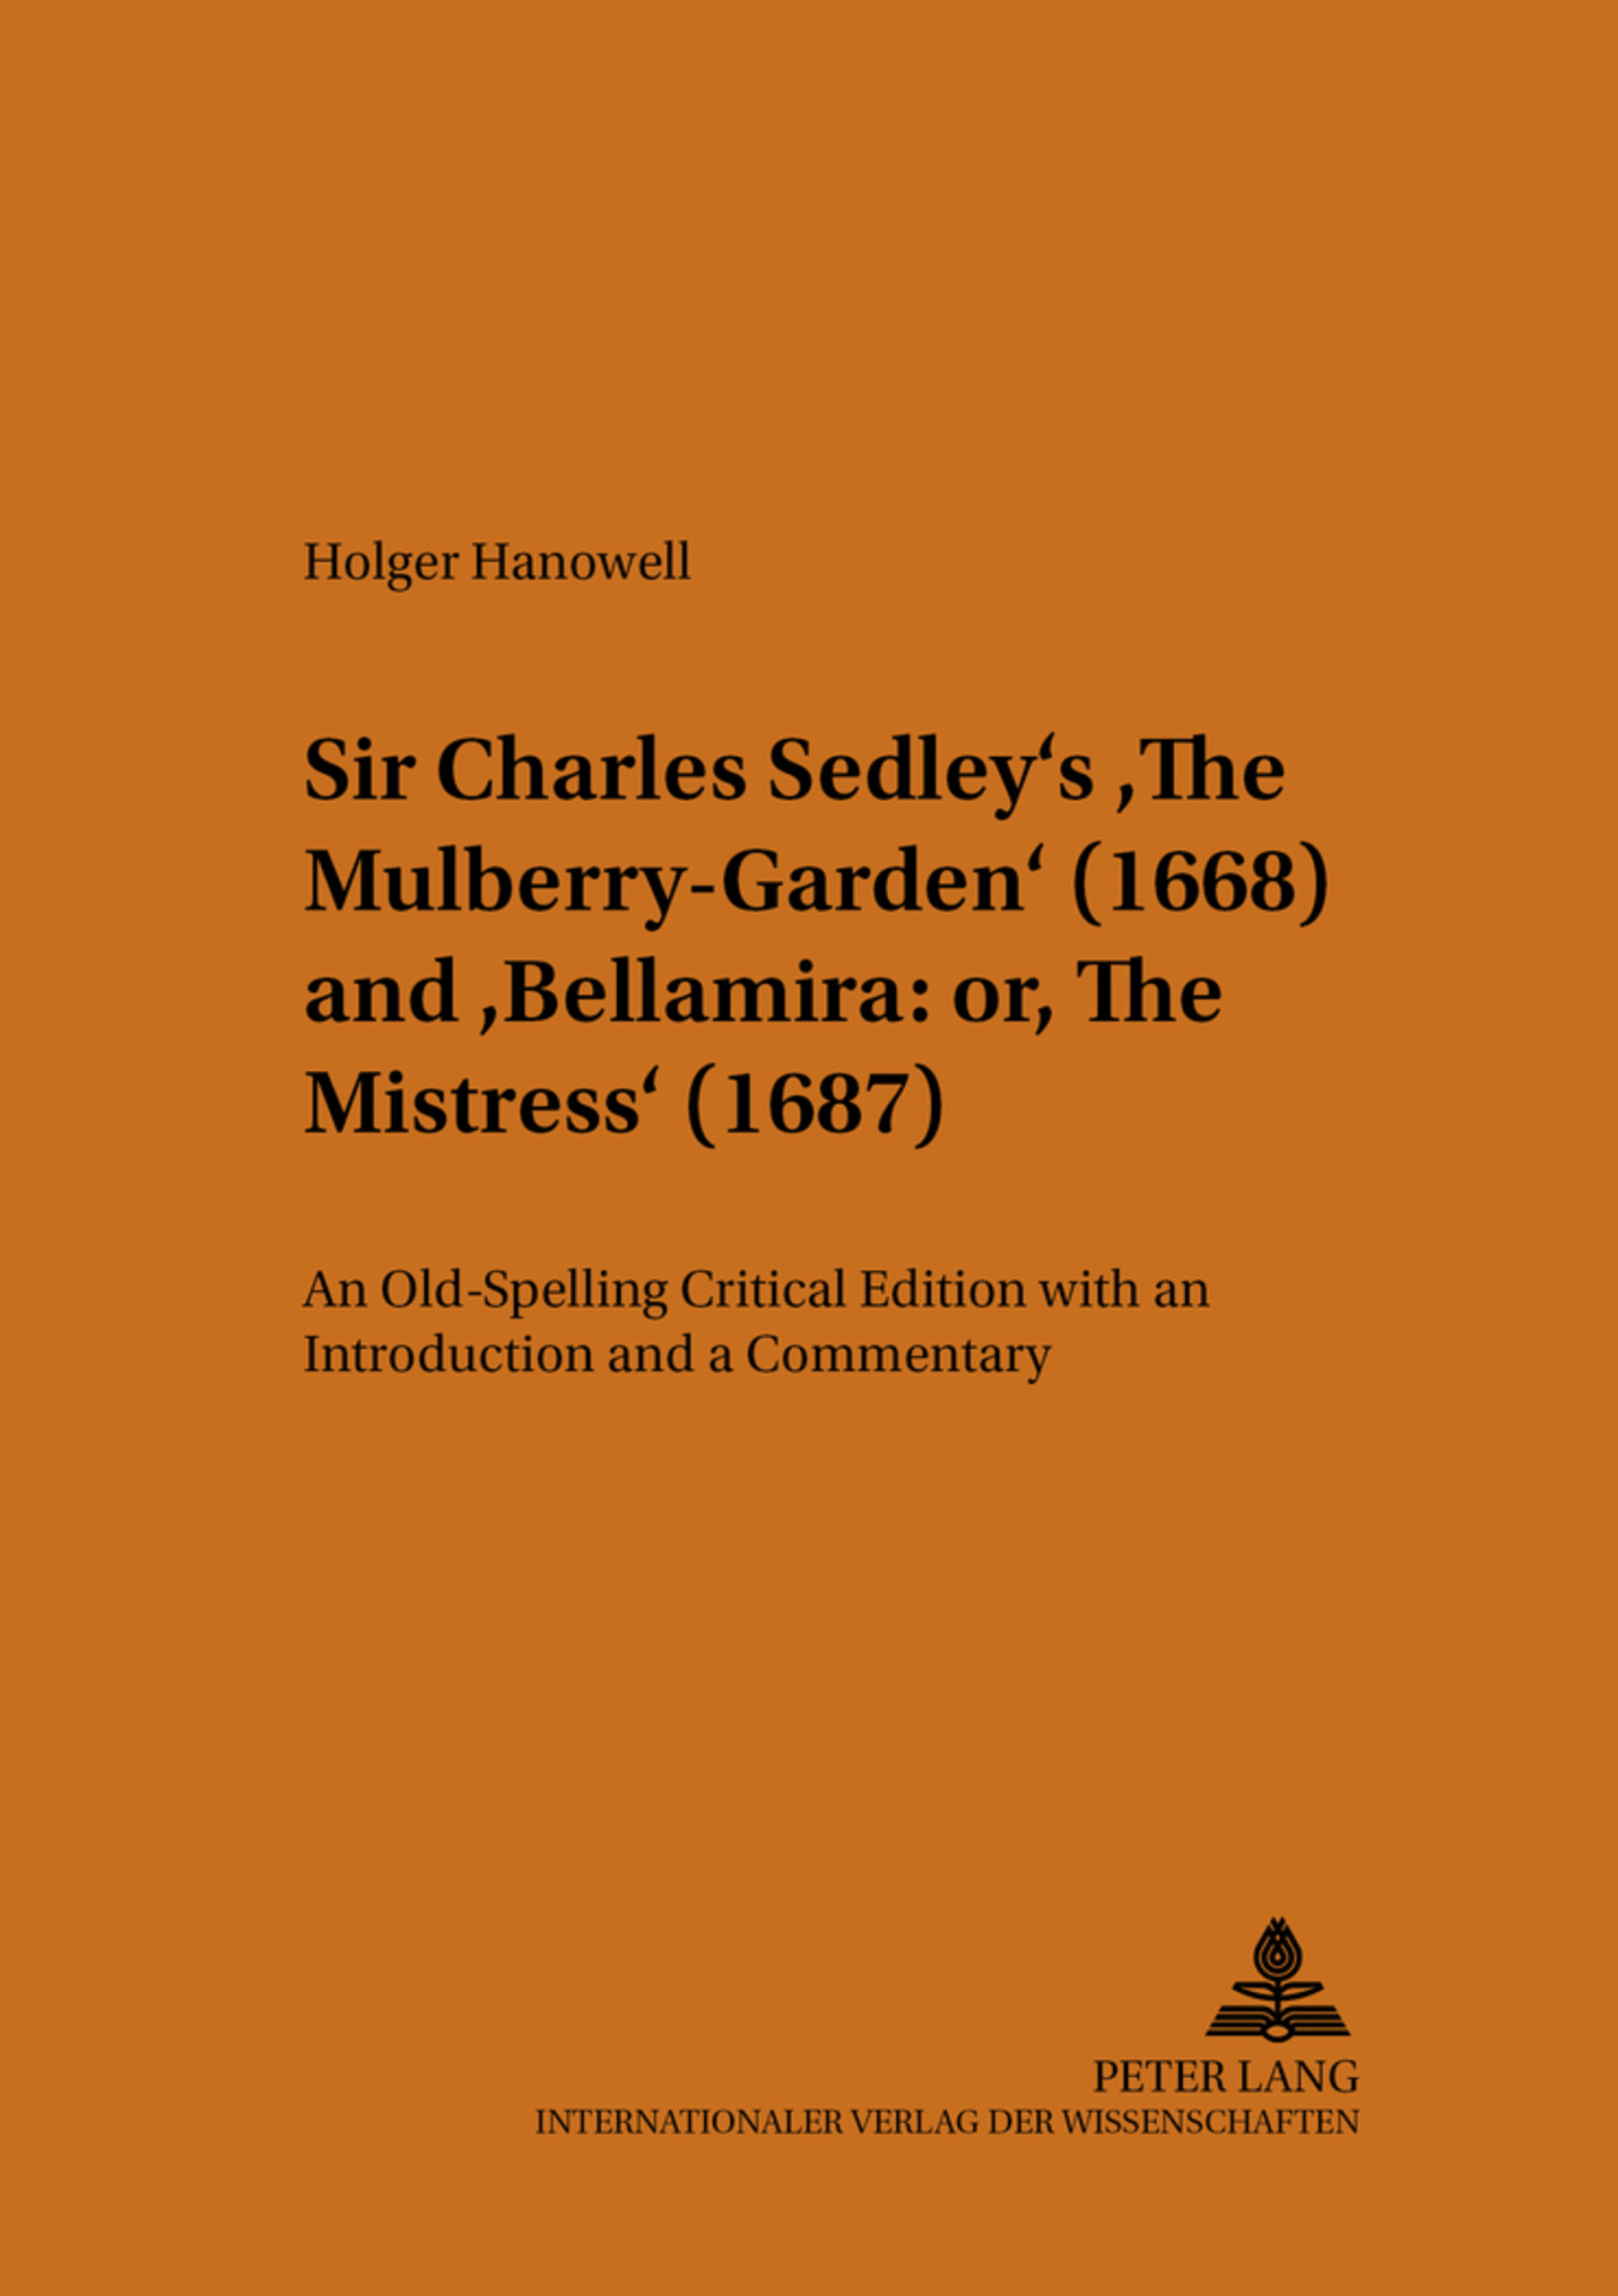 Title: Sir Charles Sedley's «The Mulberry-Garden» (1668) and «Bellamira: or, The Mistress» (1687)